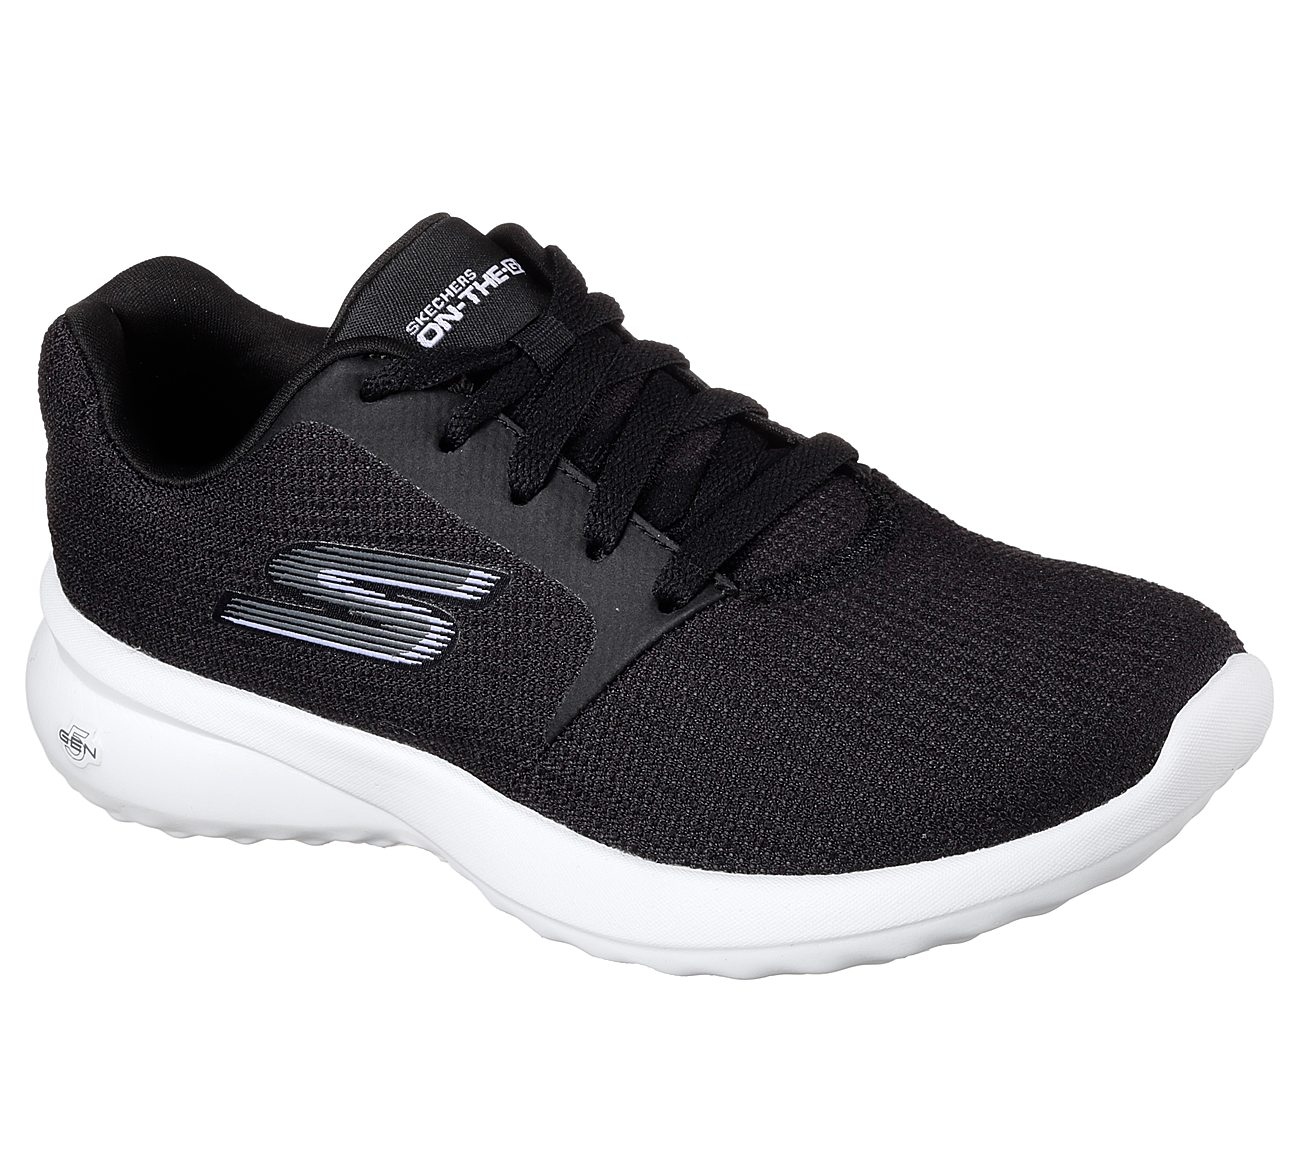 Buy the City SKECHERS Skechers GO Optimize On Skechers 3 r7rtxq